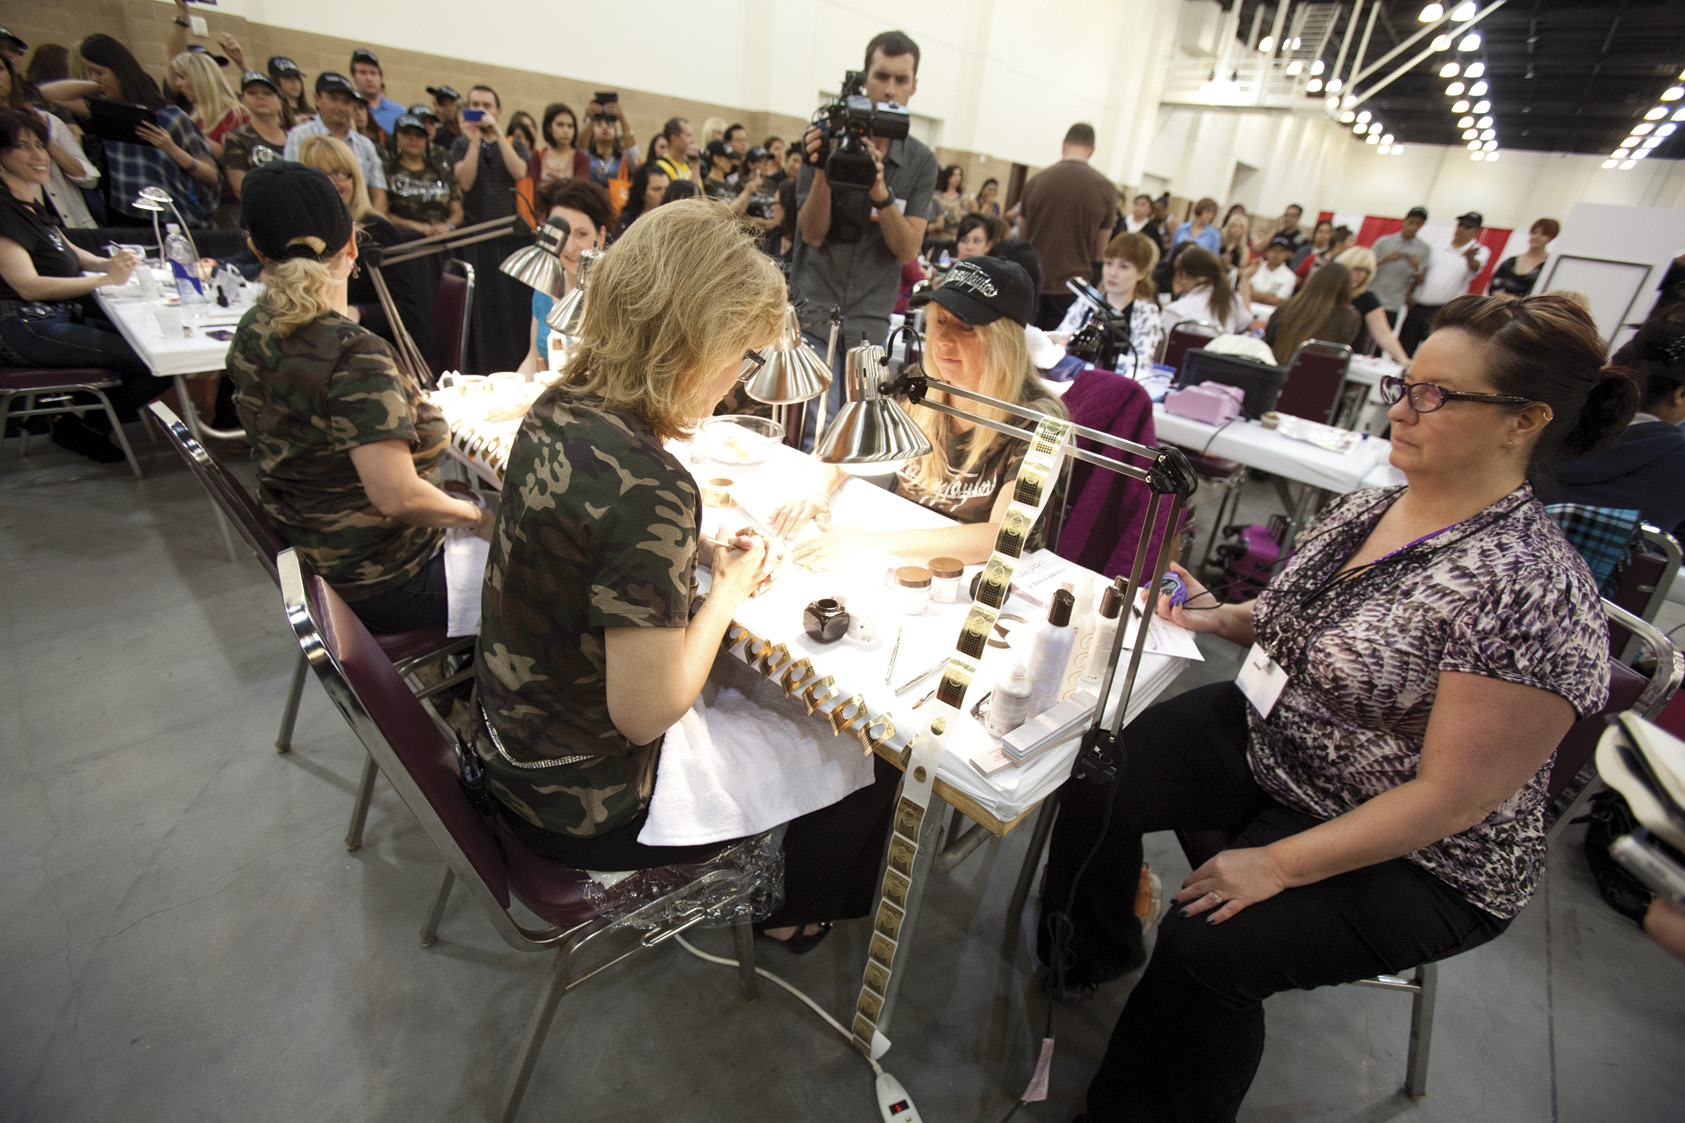 nailpro competition